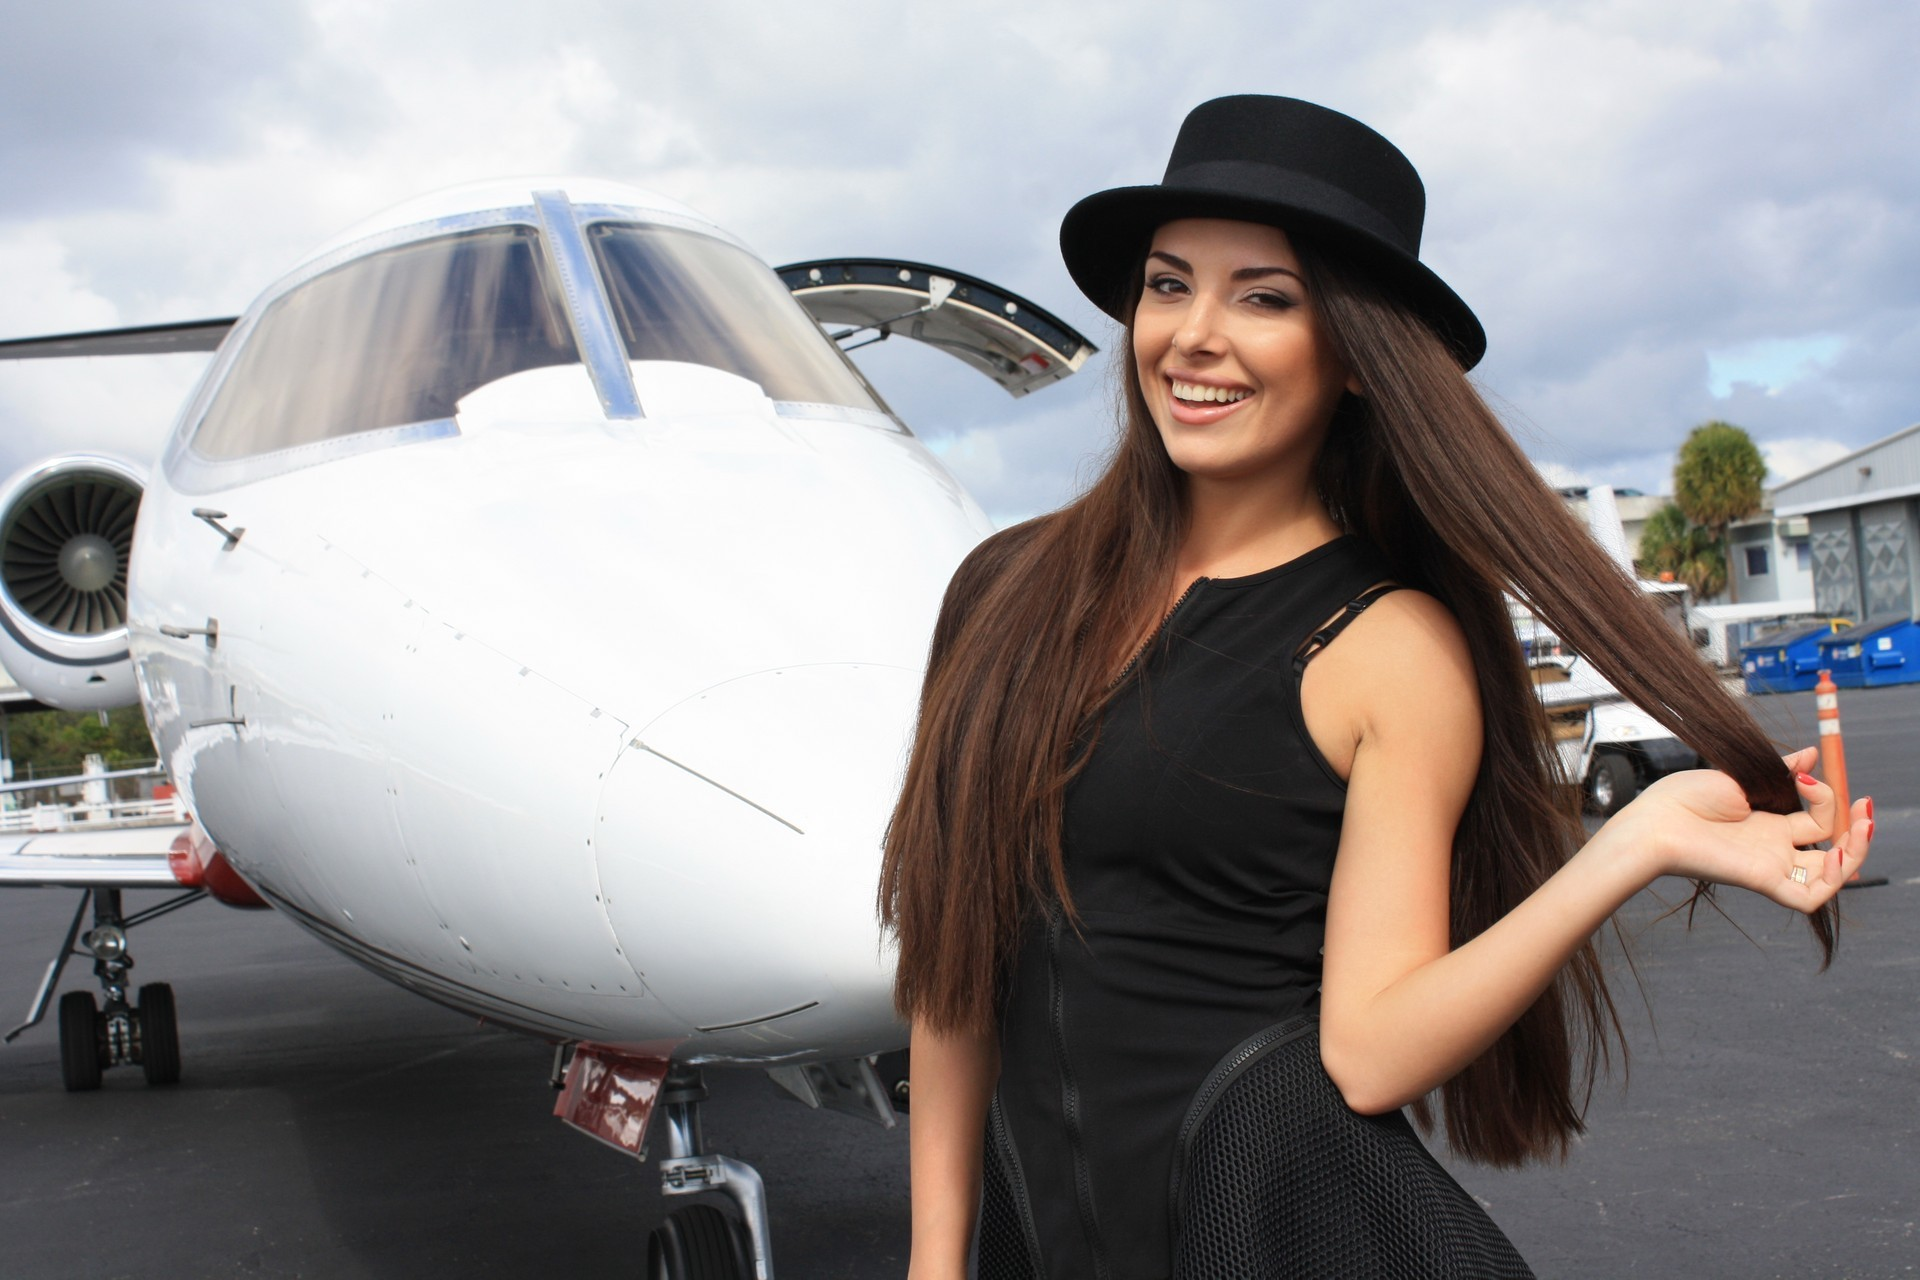 Hanford Private Jet and Air Charter Flights